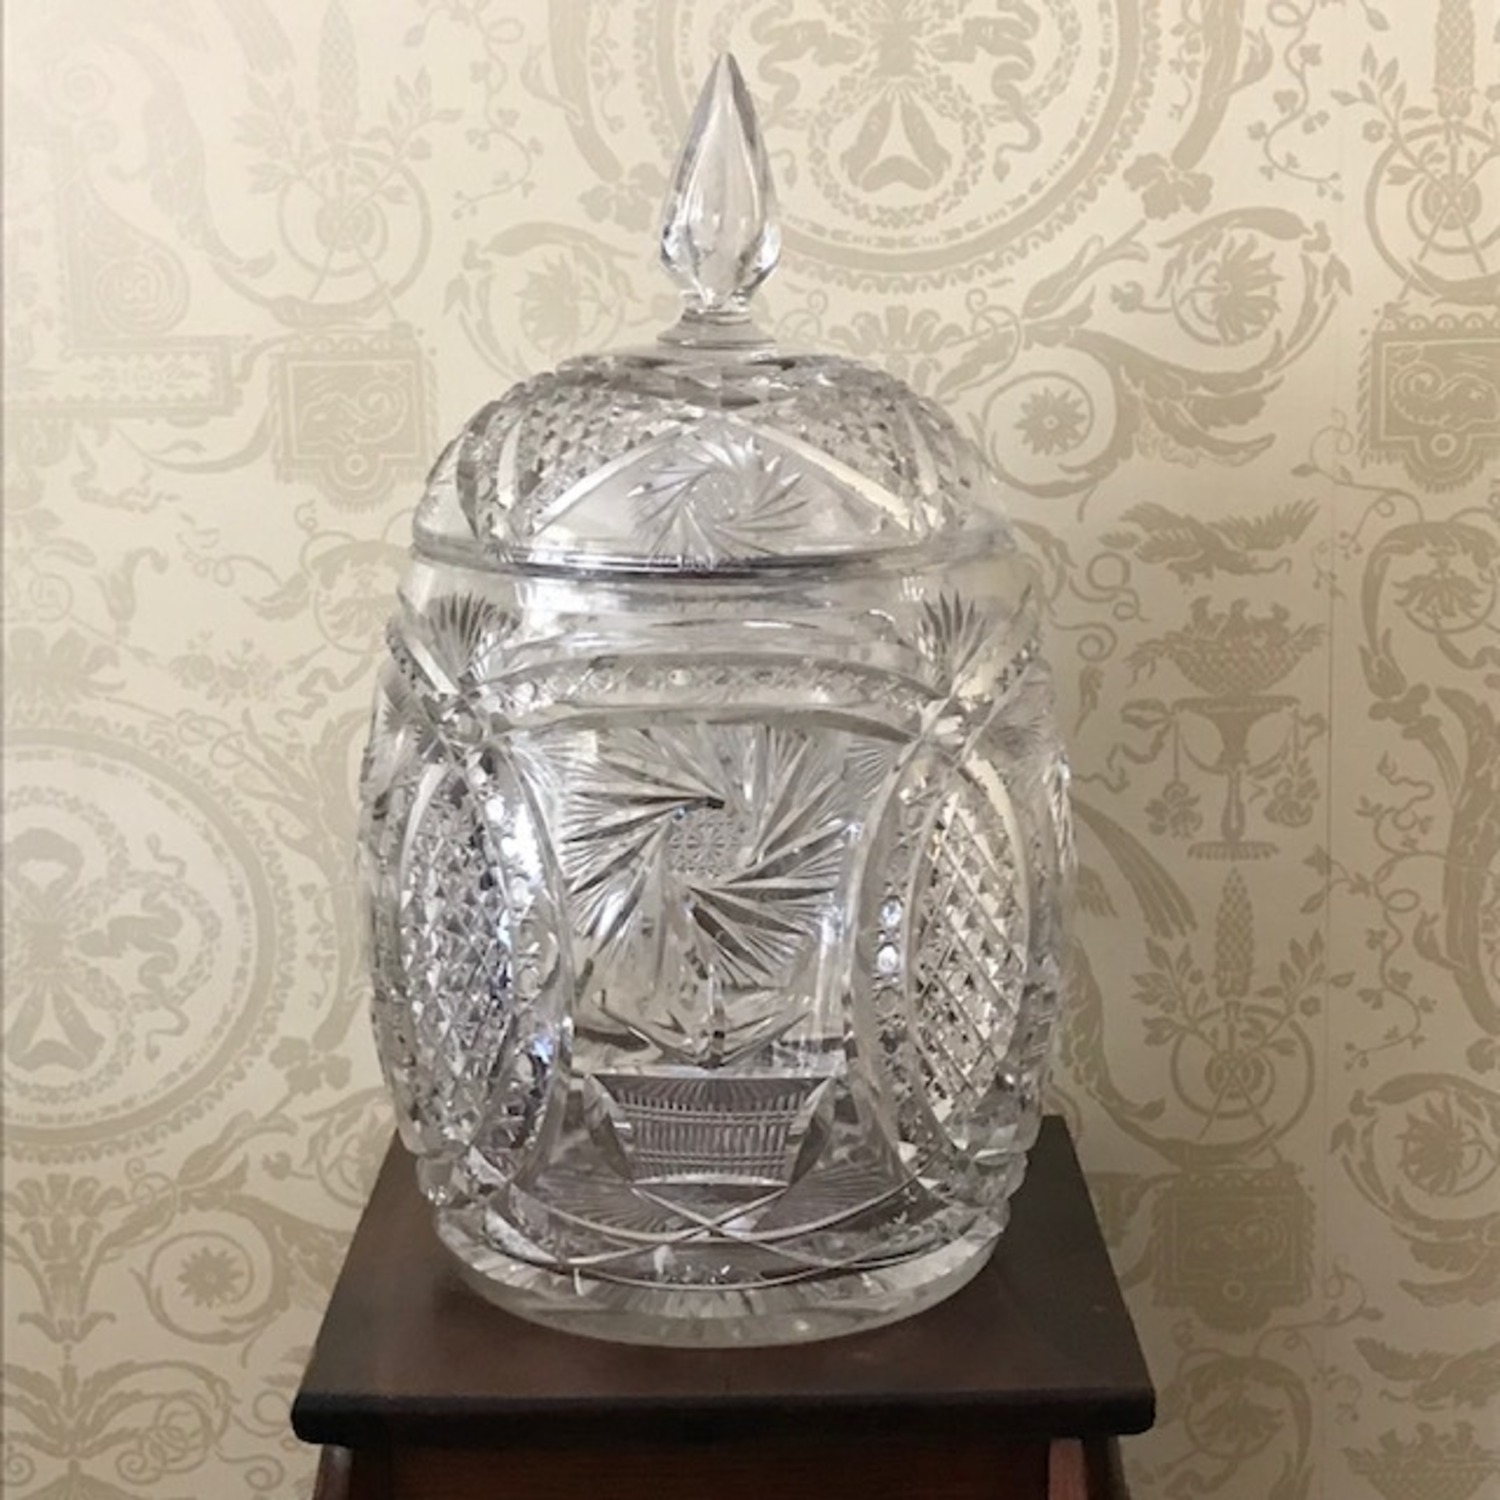 Extraordinary Antique 1800's Crystal Punch Bowl - image-1